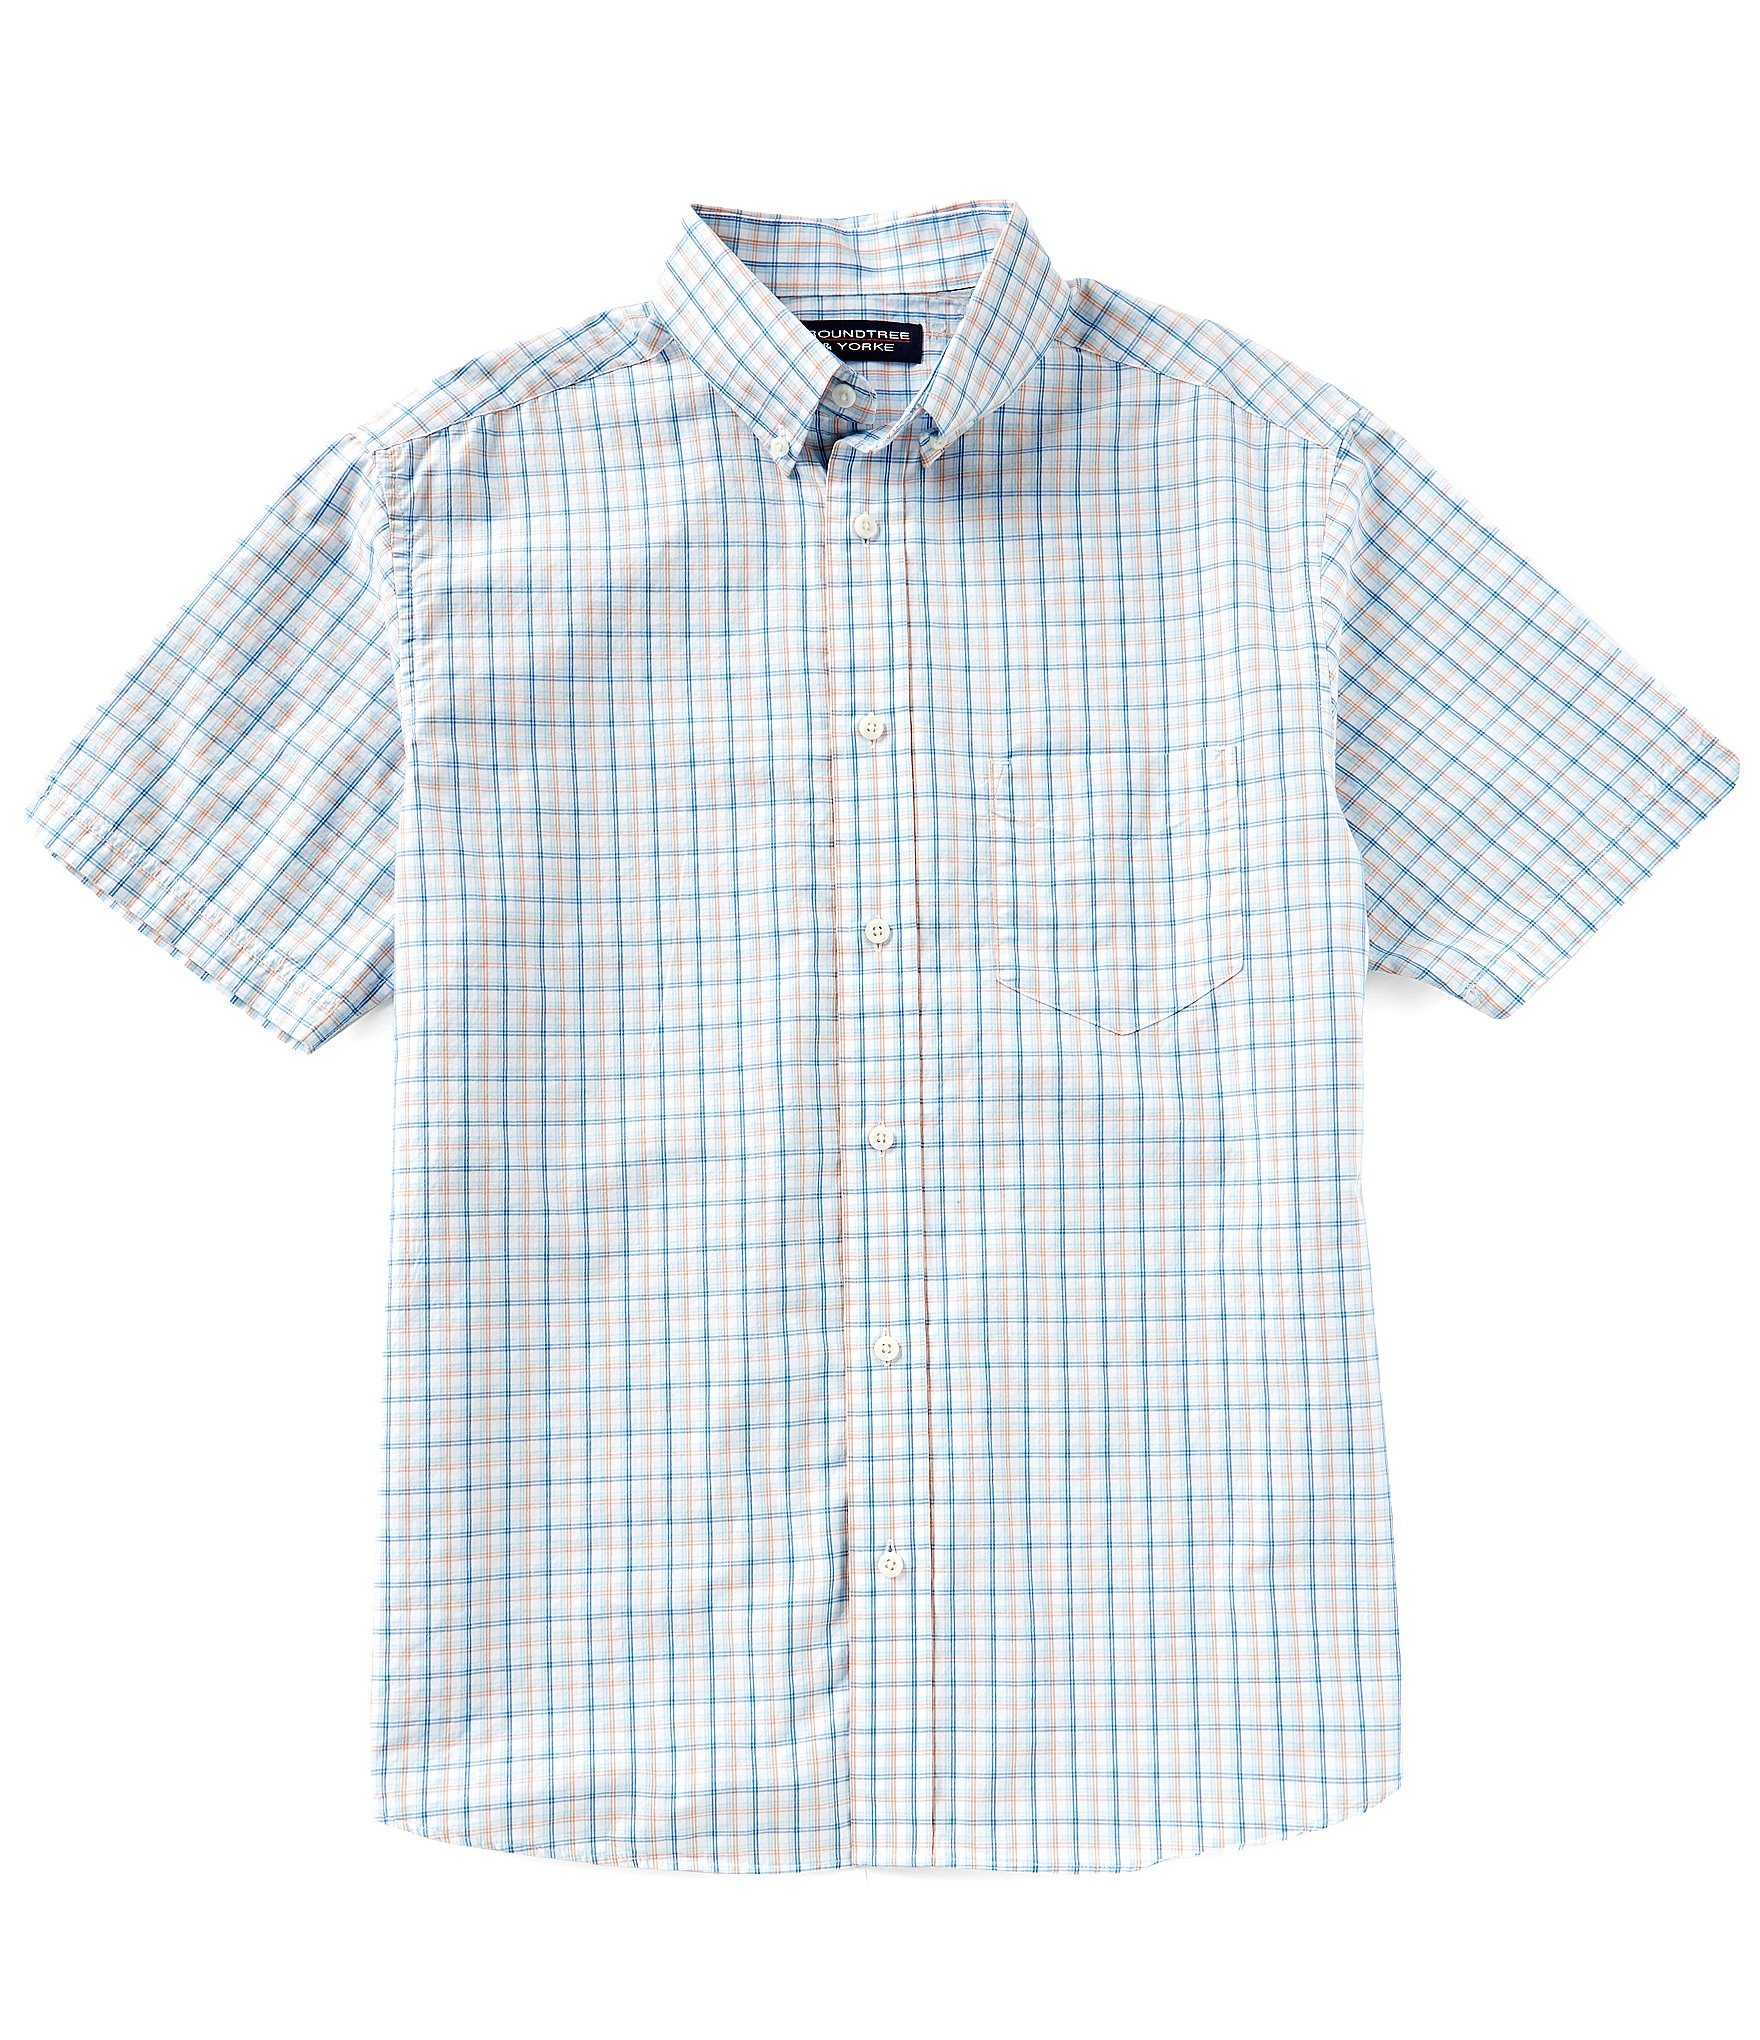 Roundtree yorke untucked short sleeve checked sportshirt for Untucked shirts for sale